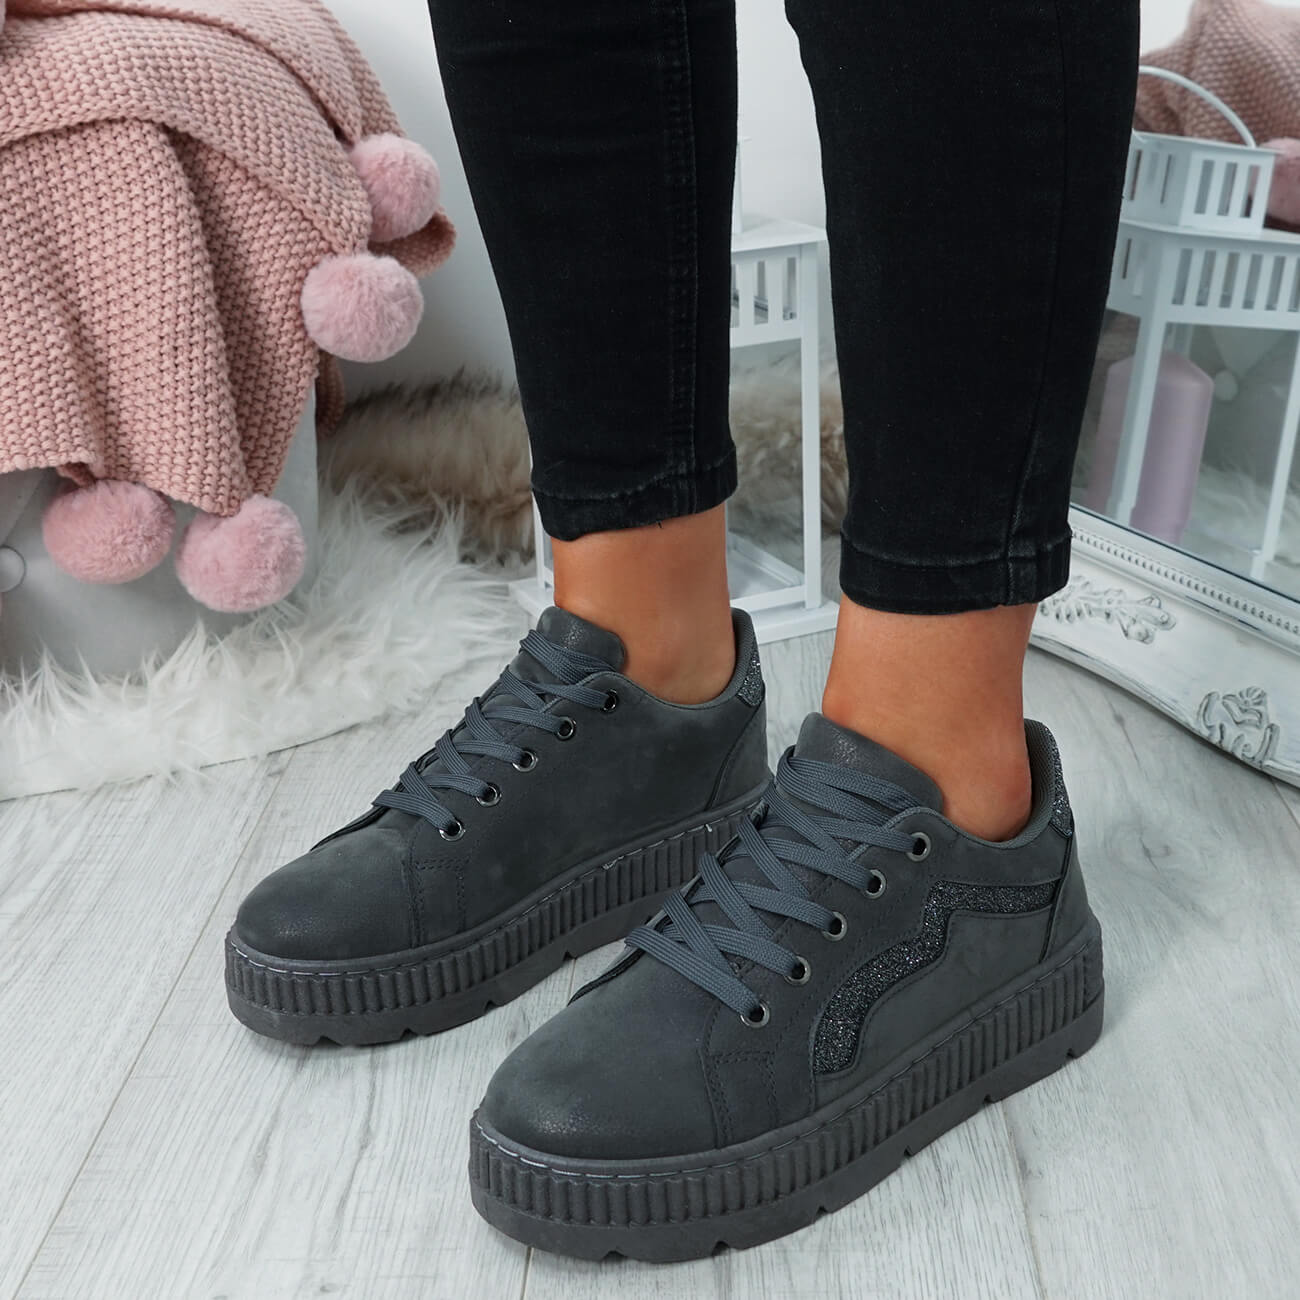 WOMENS-LADIES-LACE-UP-PLATFORM-TRAINERS-PLIMSOLL-SKATE-SNEAKERS-SHOES-SIZE thumbnail 17